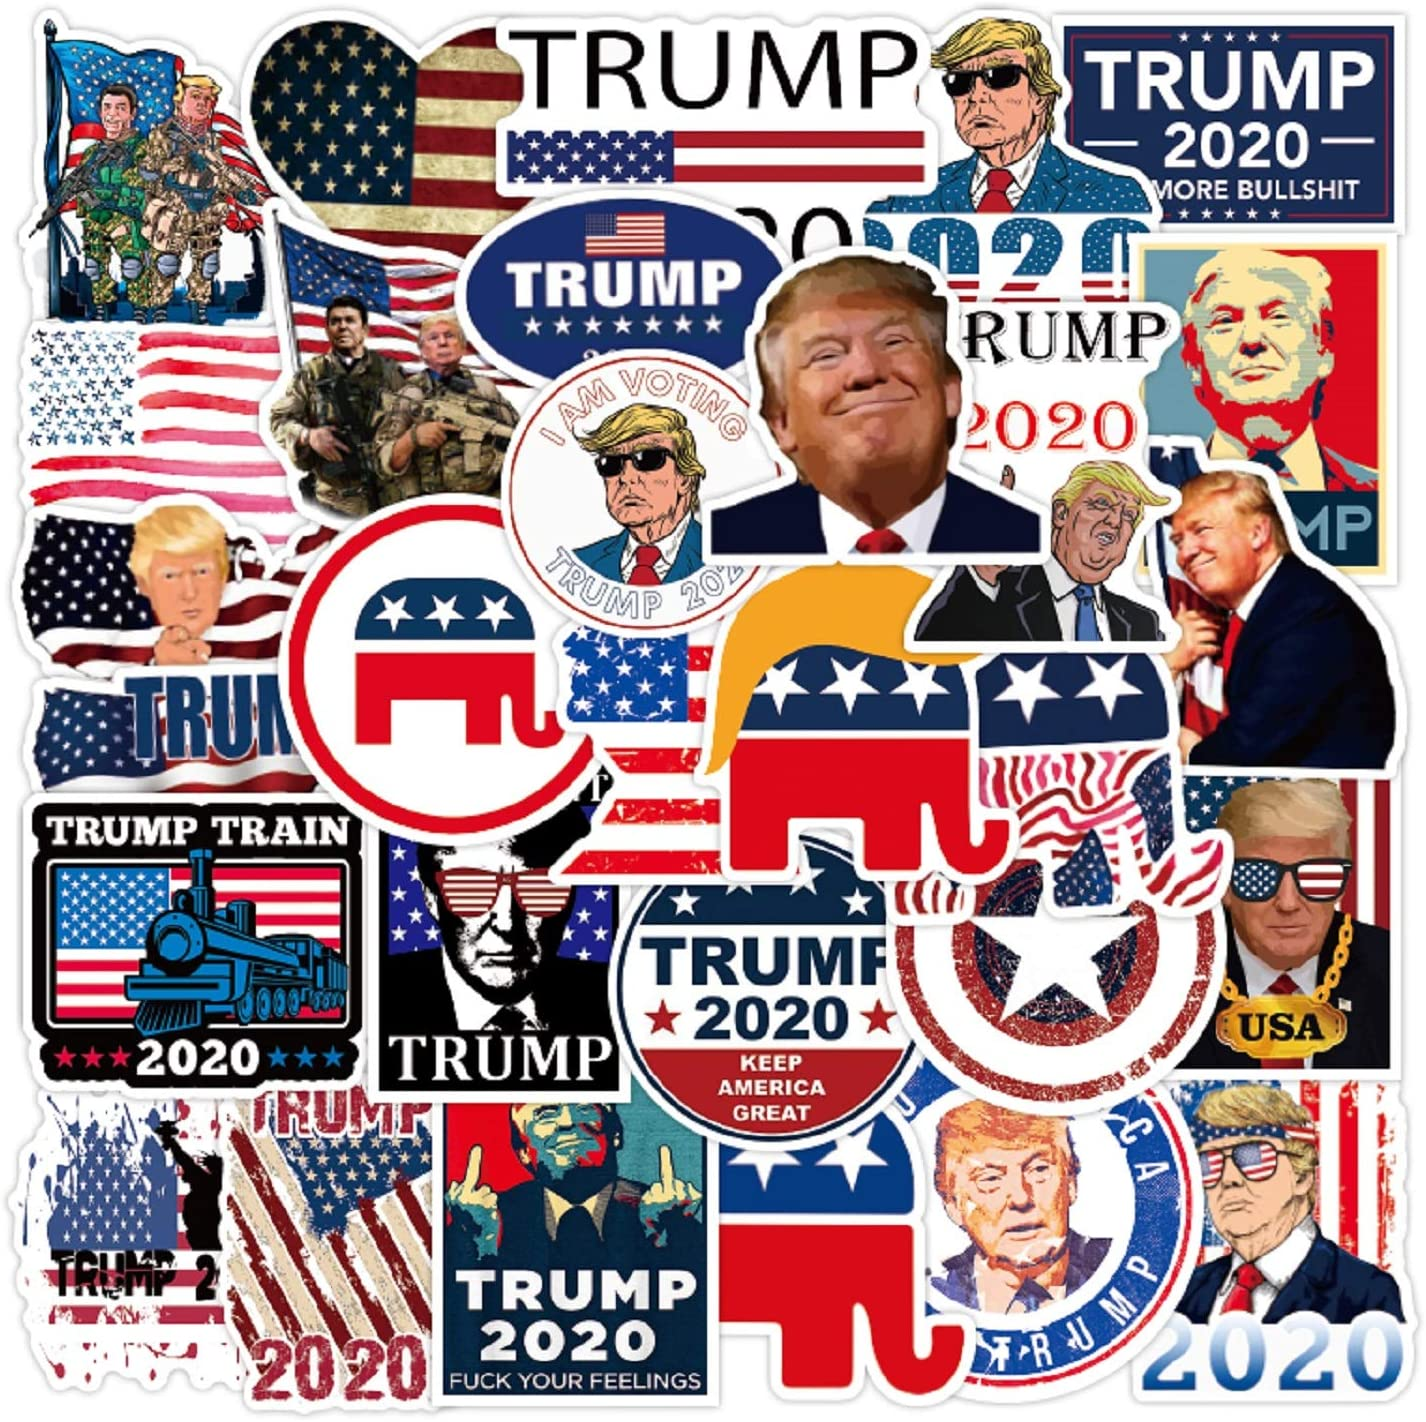 50 Pcs Trump Stickers, Waterproof Vinyl Stickers Decal for Laptop Water Bottle Phone Bike Car Luggage Guitar Skateboard, Funny Cartoon Comic Style Trump 2020 Stickers